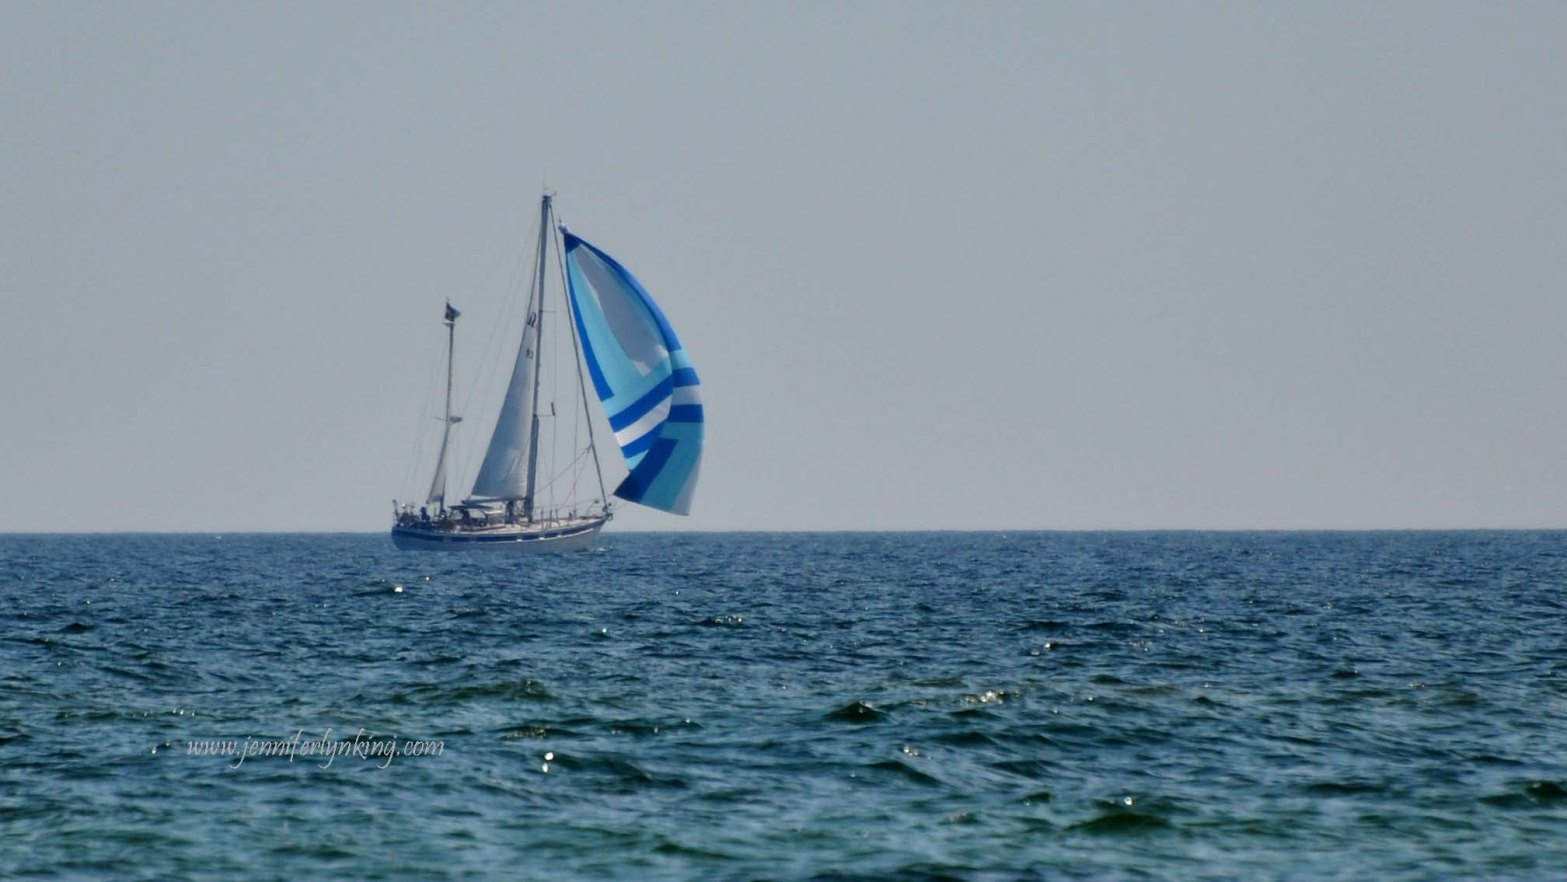 Spinnaker and Sailboat on the Baltic Sea, Sweden